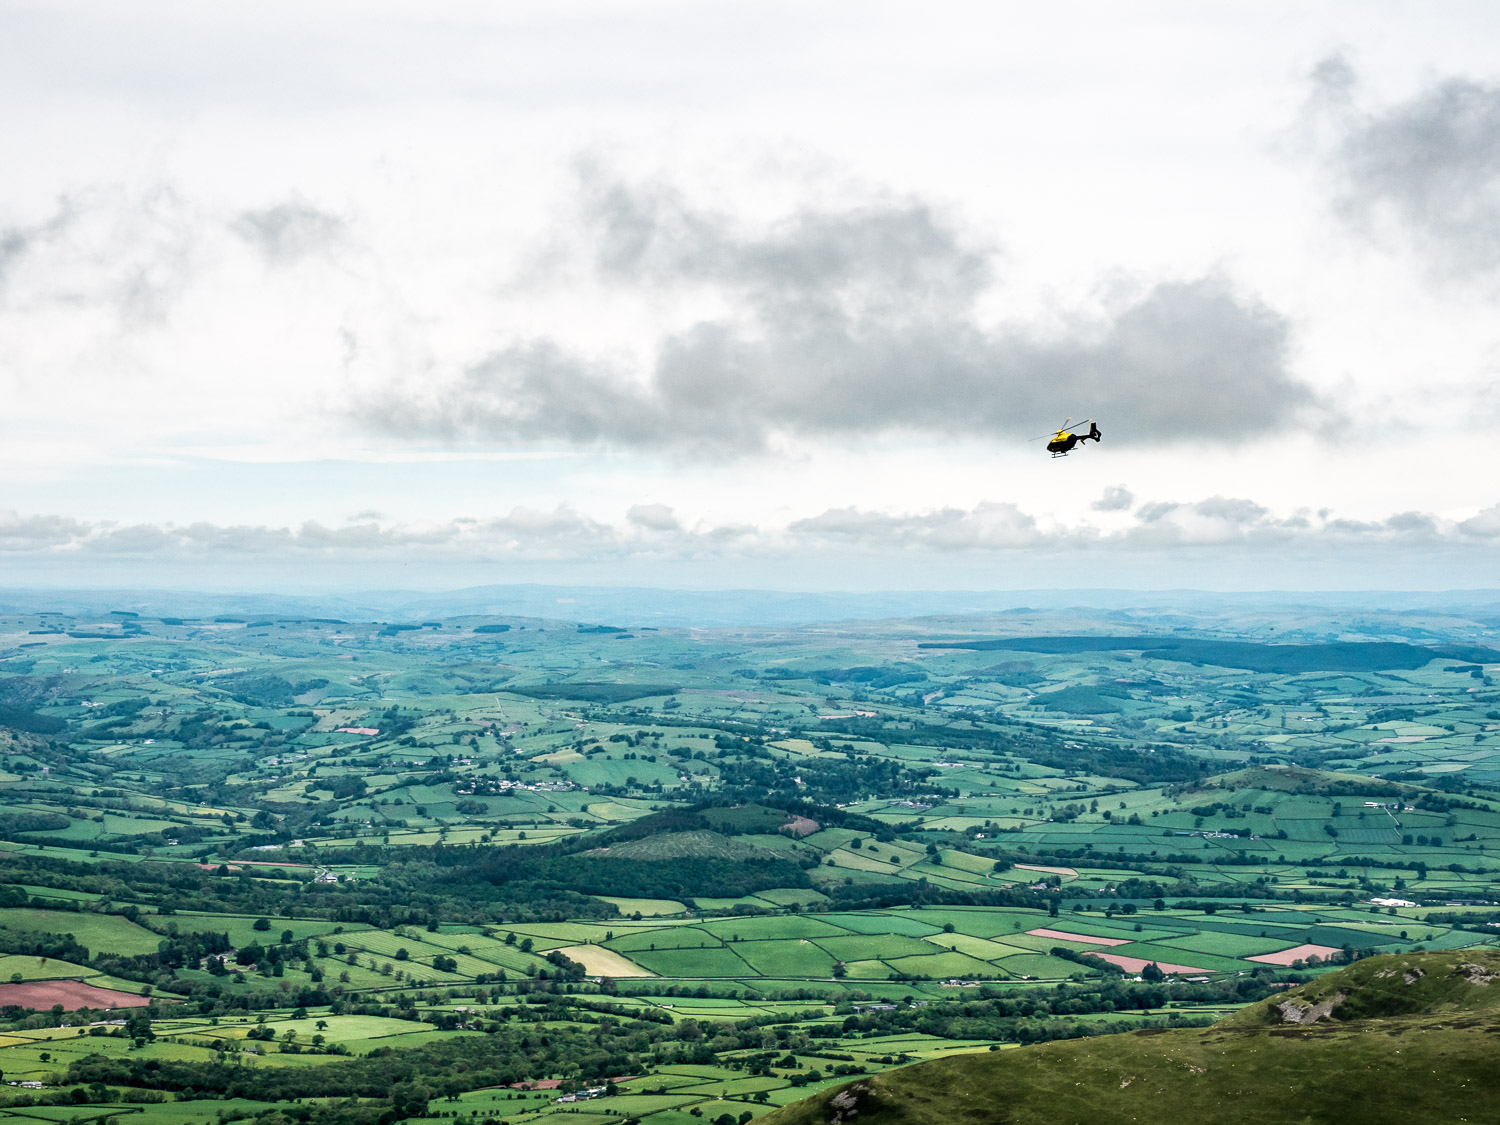 A Landscape Photograph Showing A Helicopter That Has Just Flown Over Pen Y Fan In The Brecon Beacons National Park, Wales.